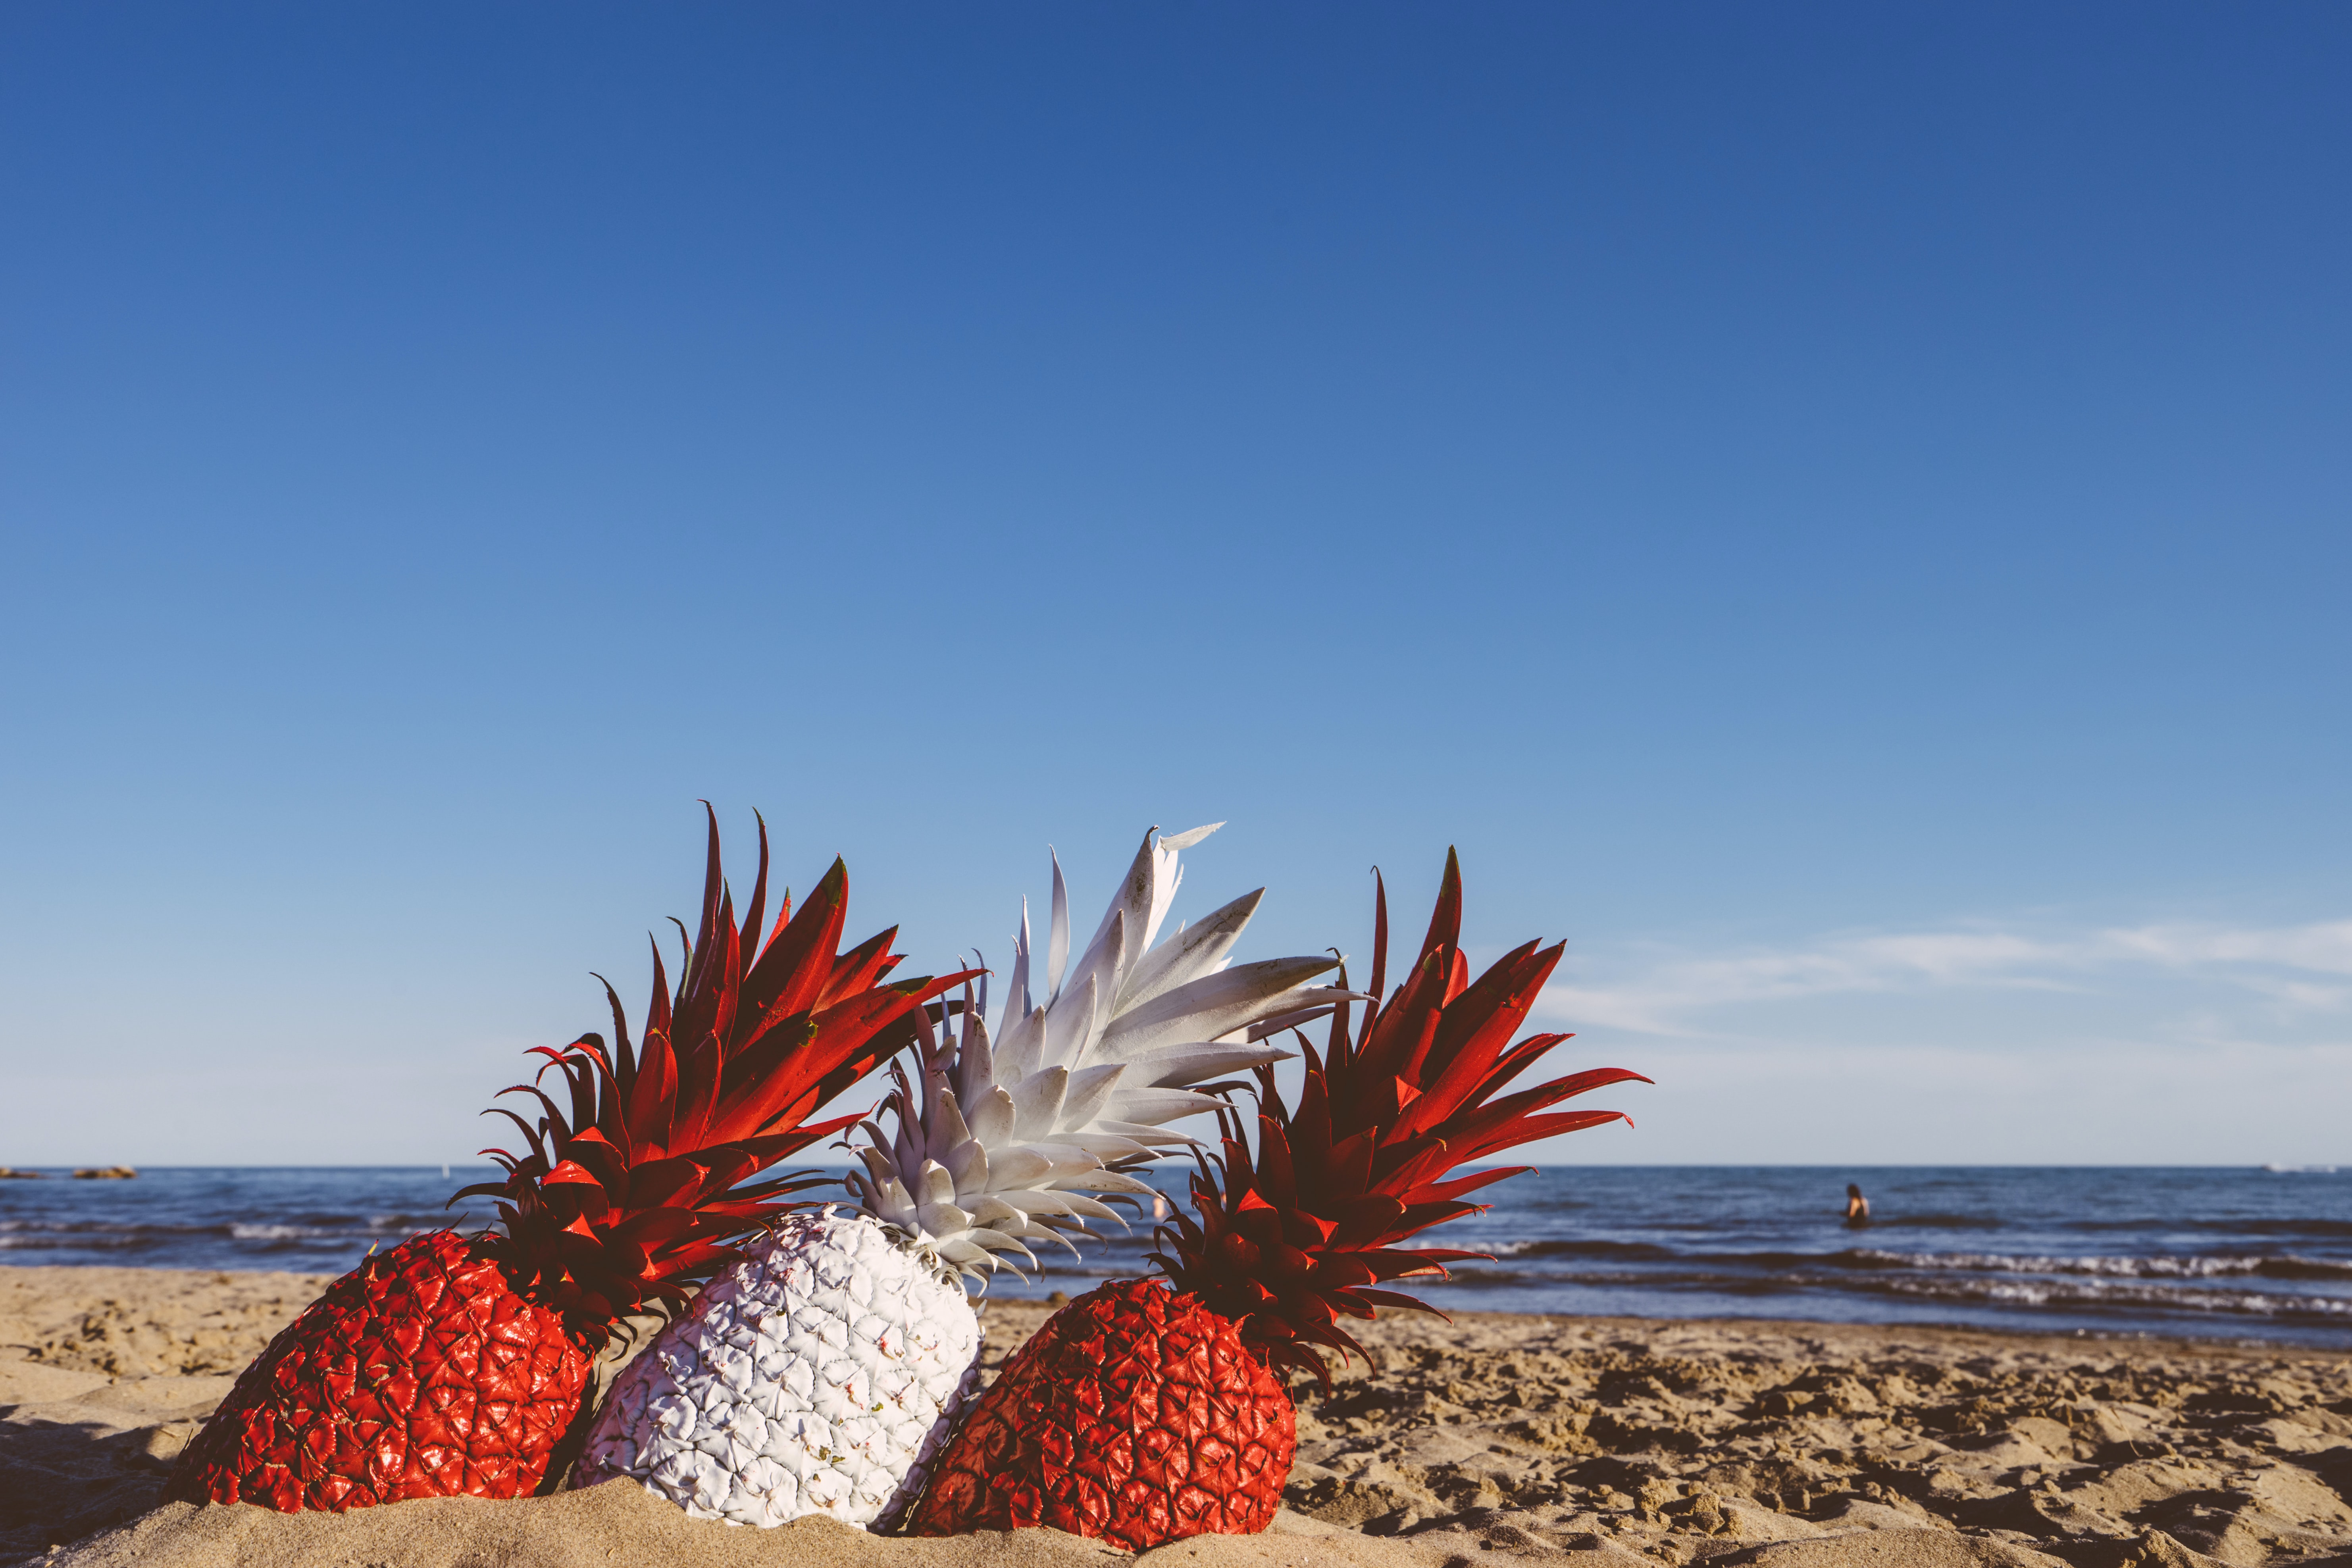 two red and white pineapples on seashore during daytime